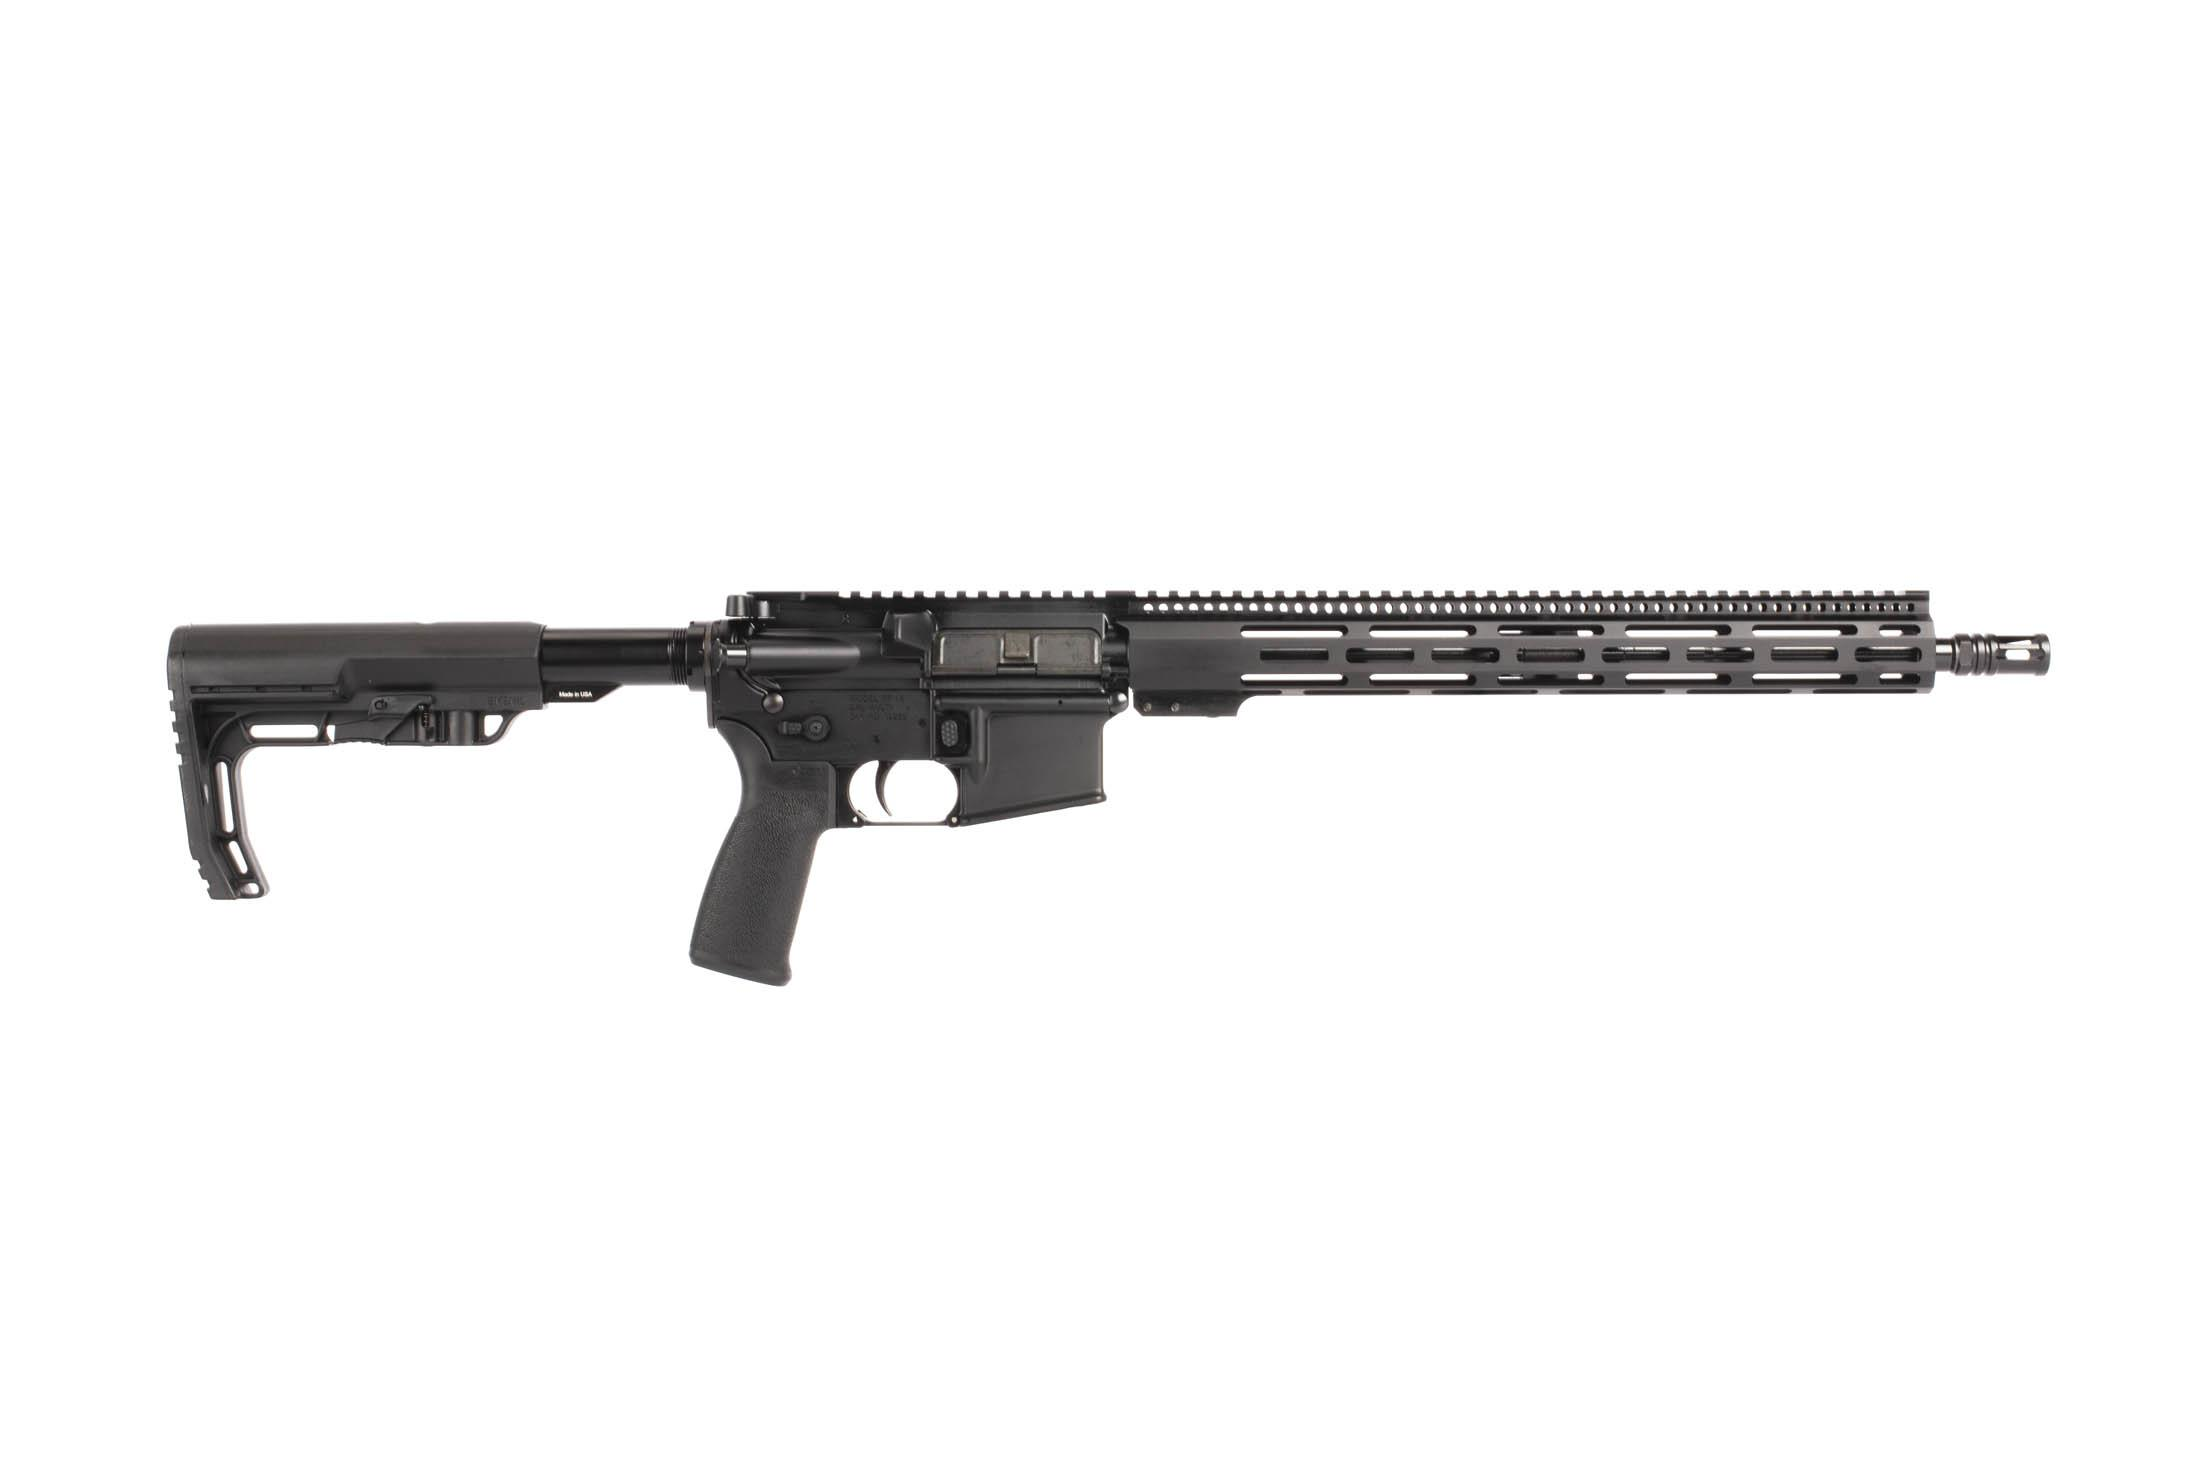 The Radical Firearms 16 inch 5.56 NATO 1:7 twist barrel Carbine Length M4 AR-15 Rifle with battlelink minimalist stock